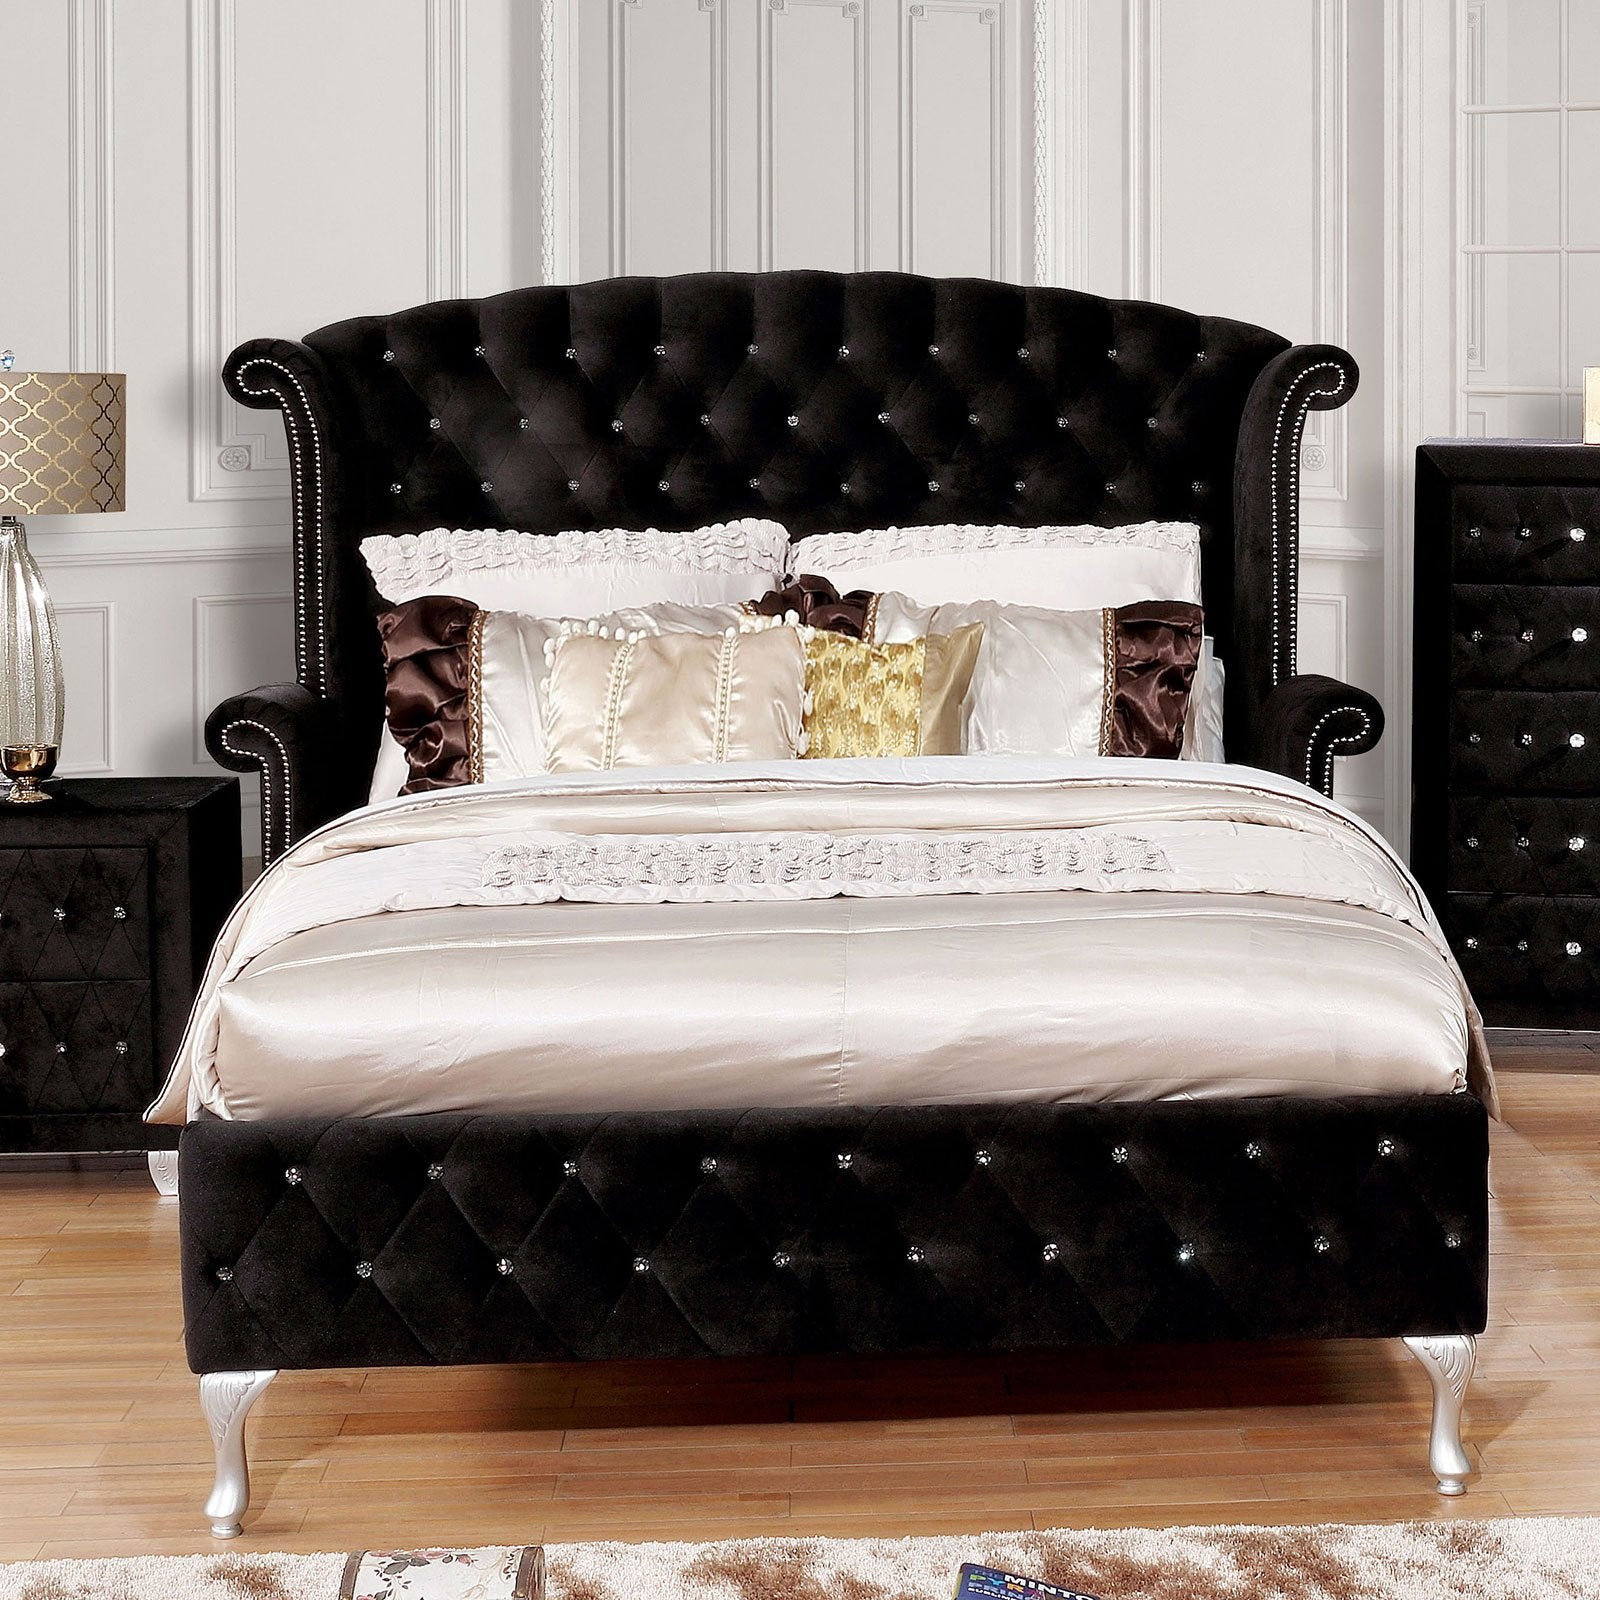 Alzire Cal.King Bed Black (Bed Only) - InteriorDesignsToGo.com